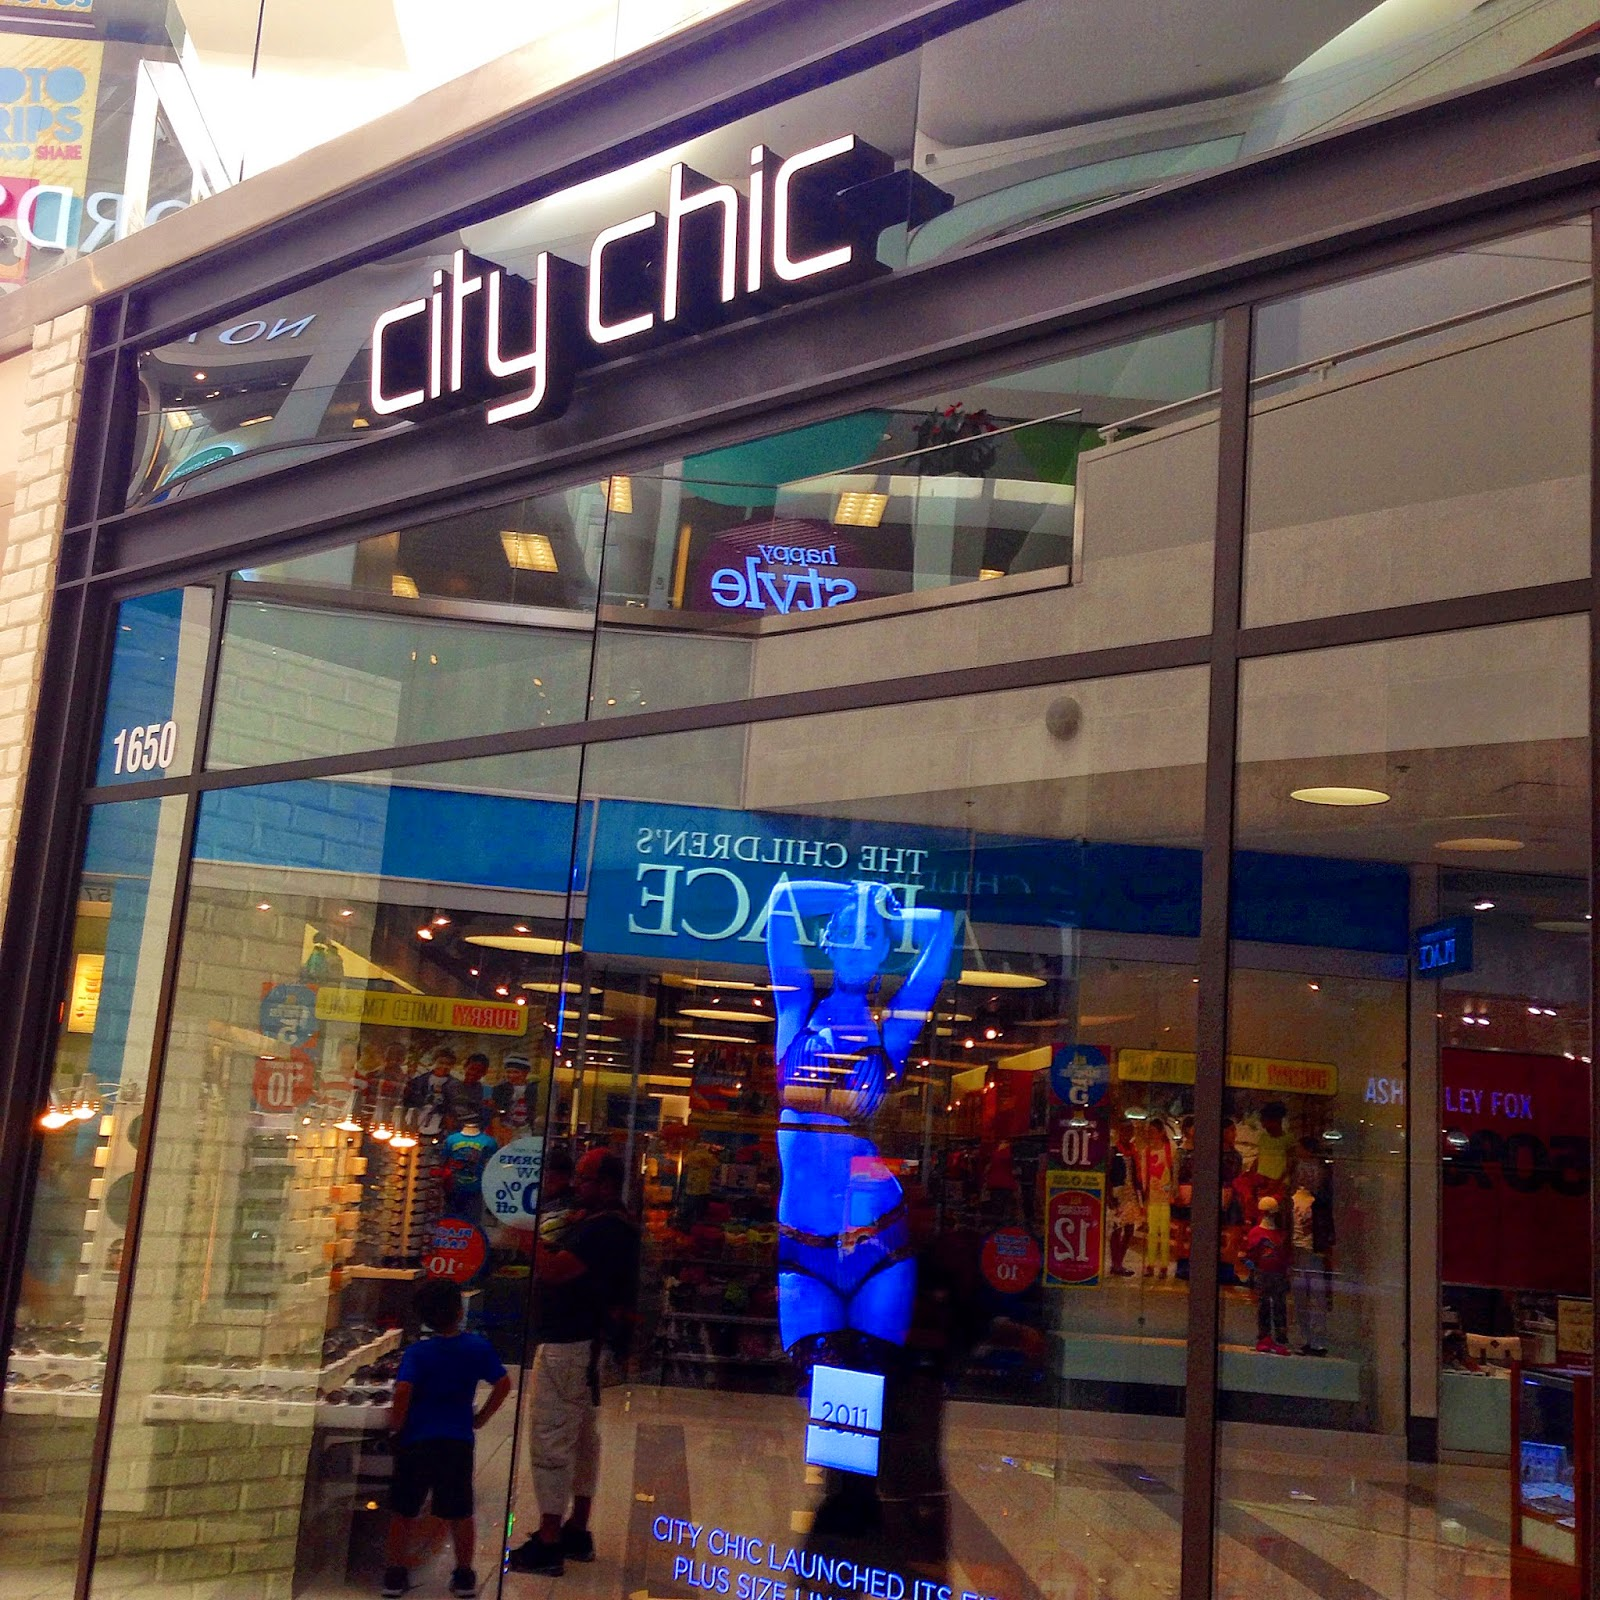 city chic, westfiled, culver city mall, plus size fashion, Australian plus size store